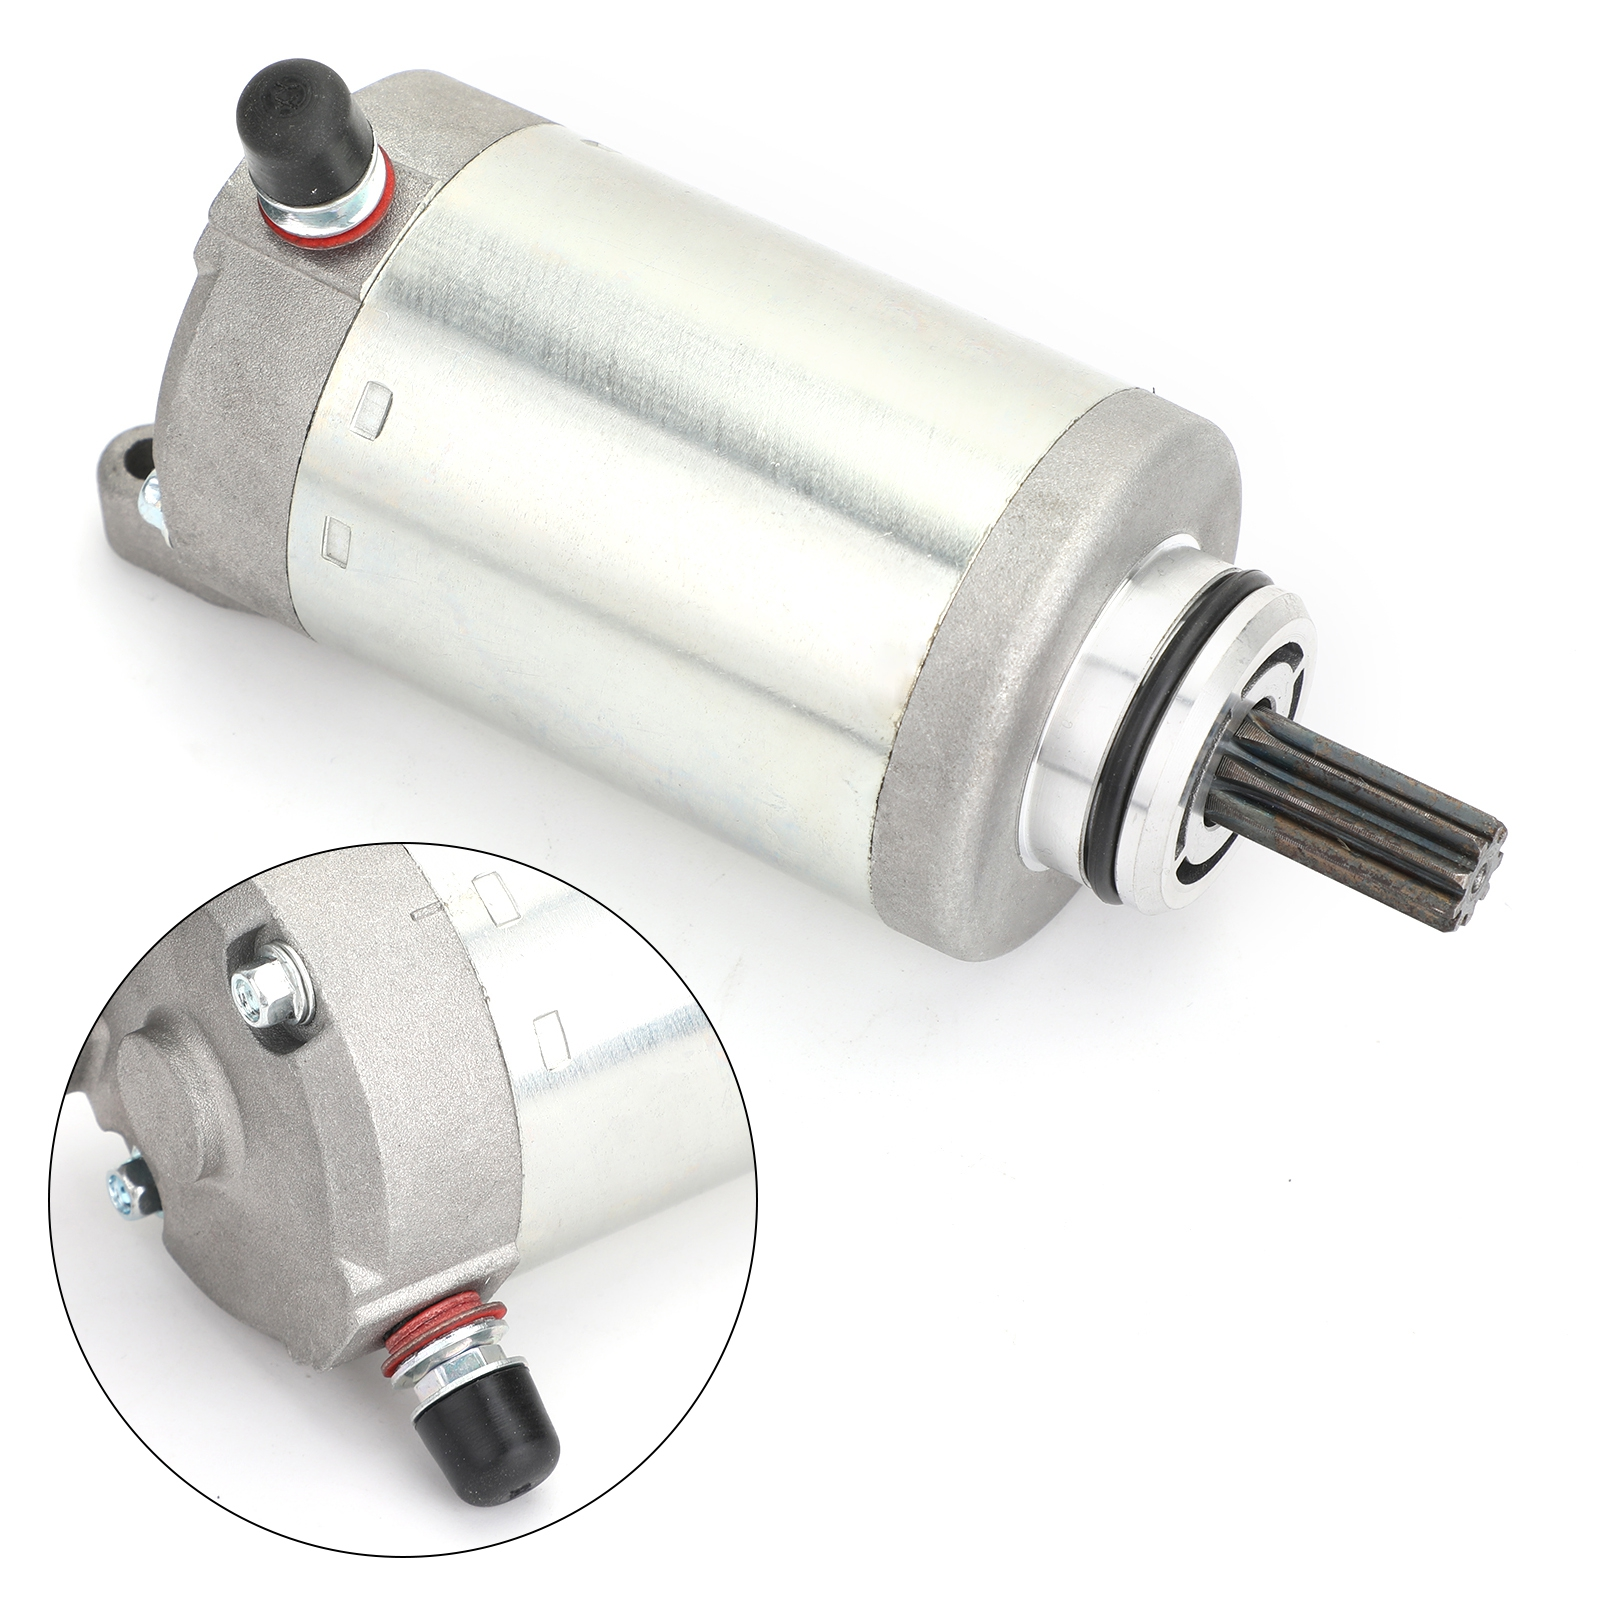 0825-024 Starter Motor: Replacement for Arctic Cat 0825-011 0825-013